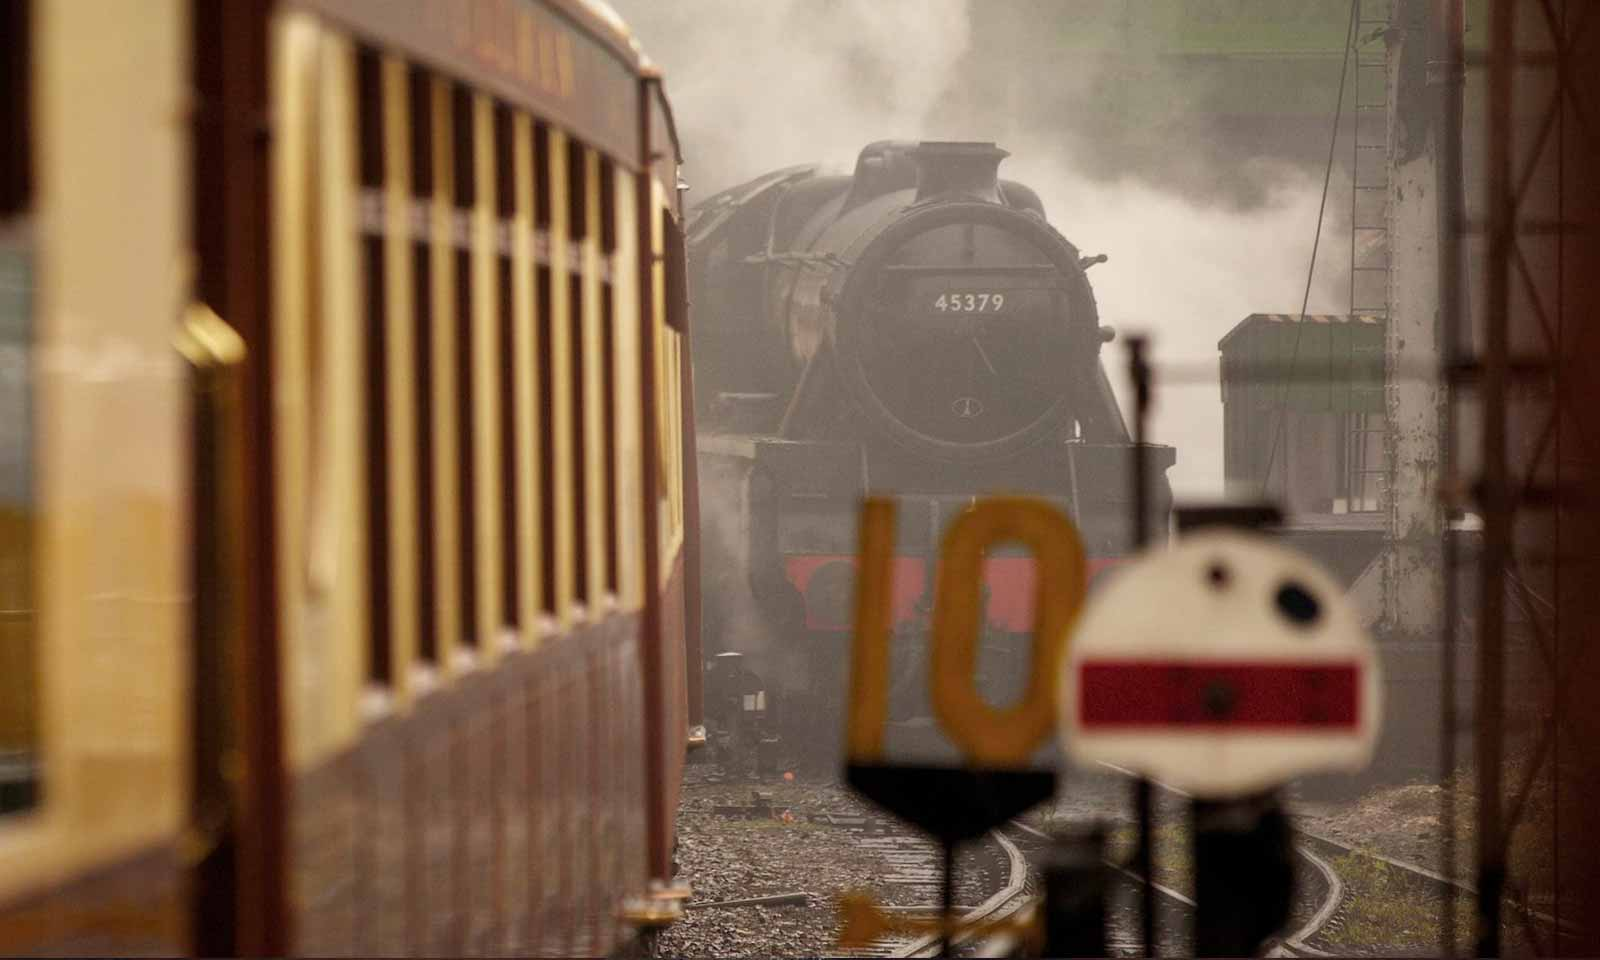 Orient Express journeys under £500